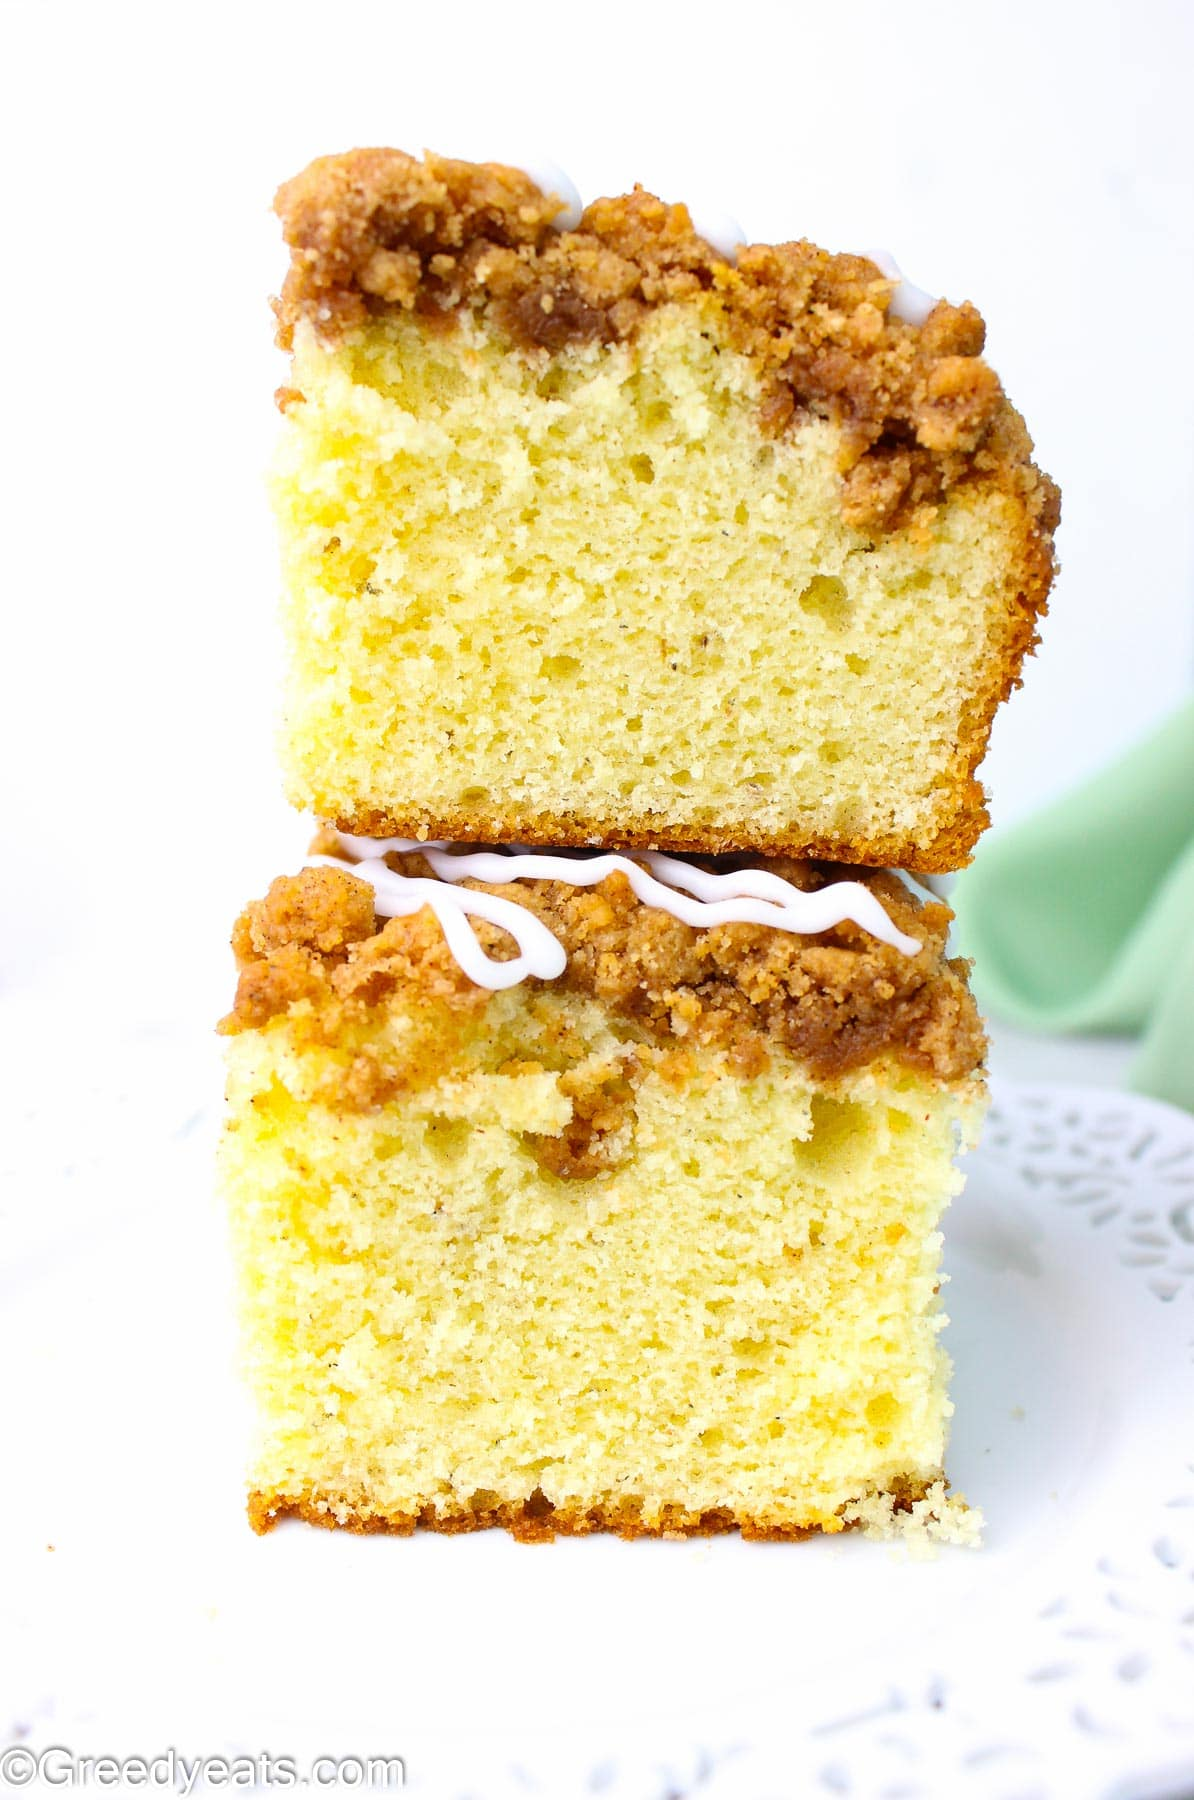 A stack of vanilla glazed coffee cake with Cinnamon streusel topping.